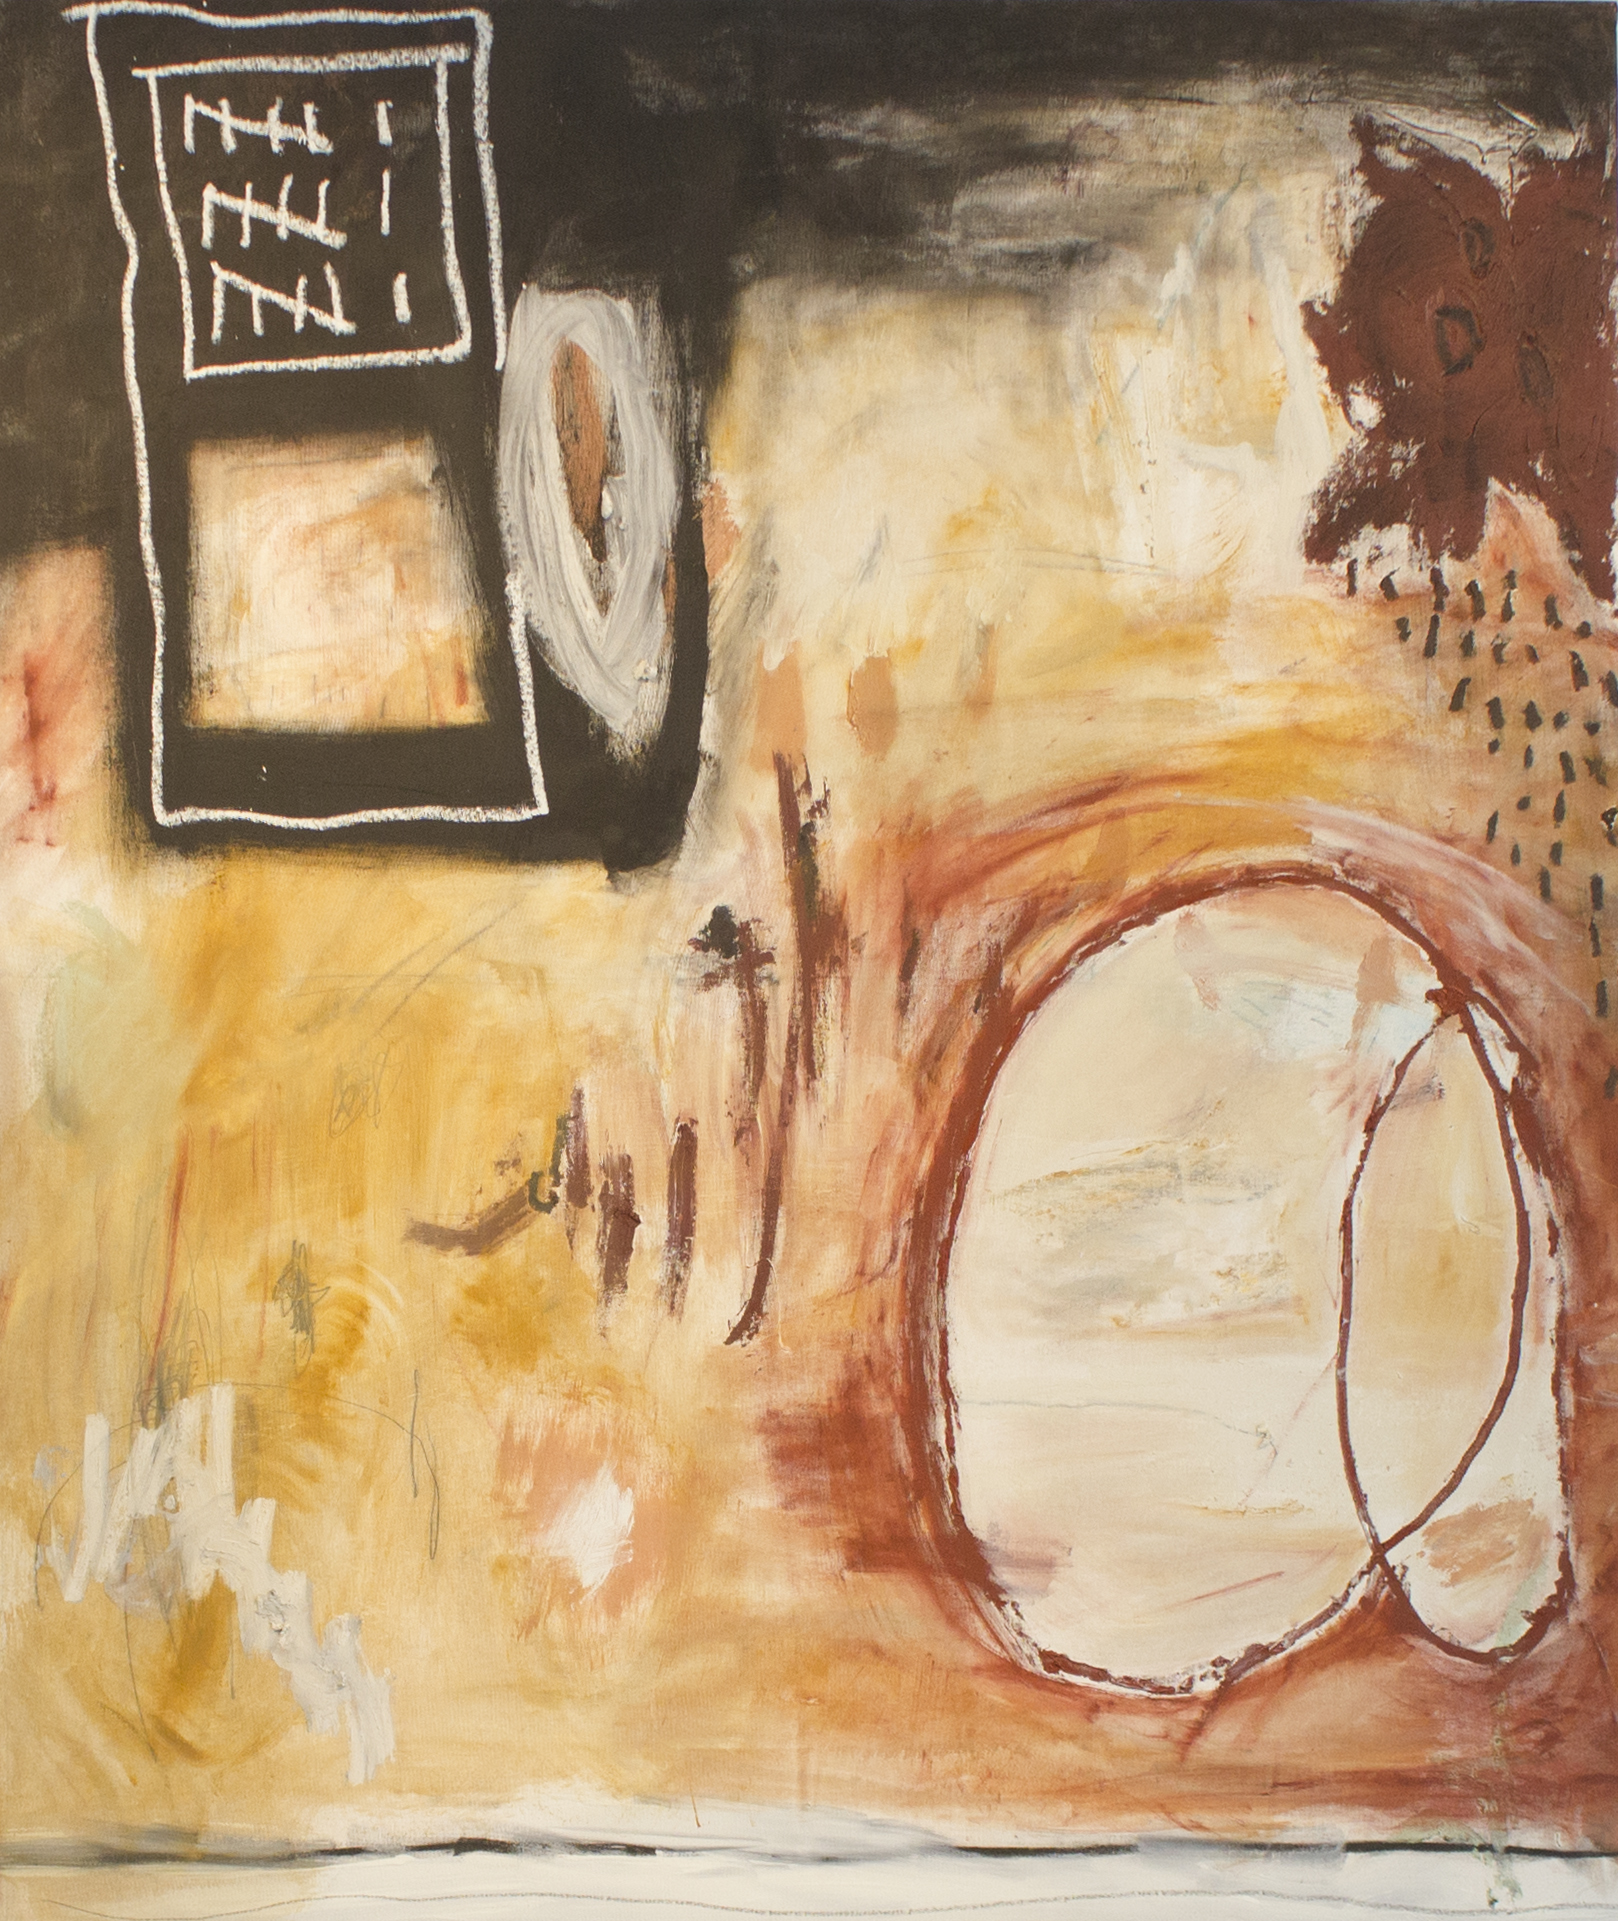 When I Forgot About Everything  , 2016   52 x 44 Inches  Oil, Oil Stick, Acrylic, and Graphite on Canvas